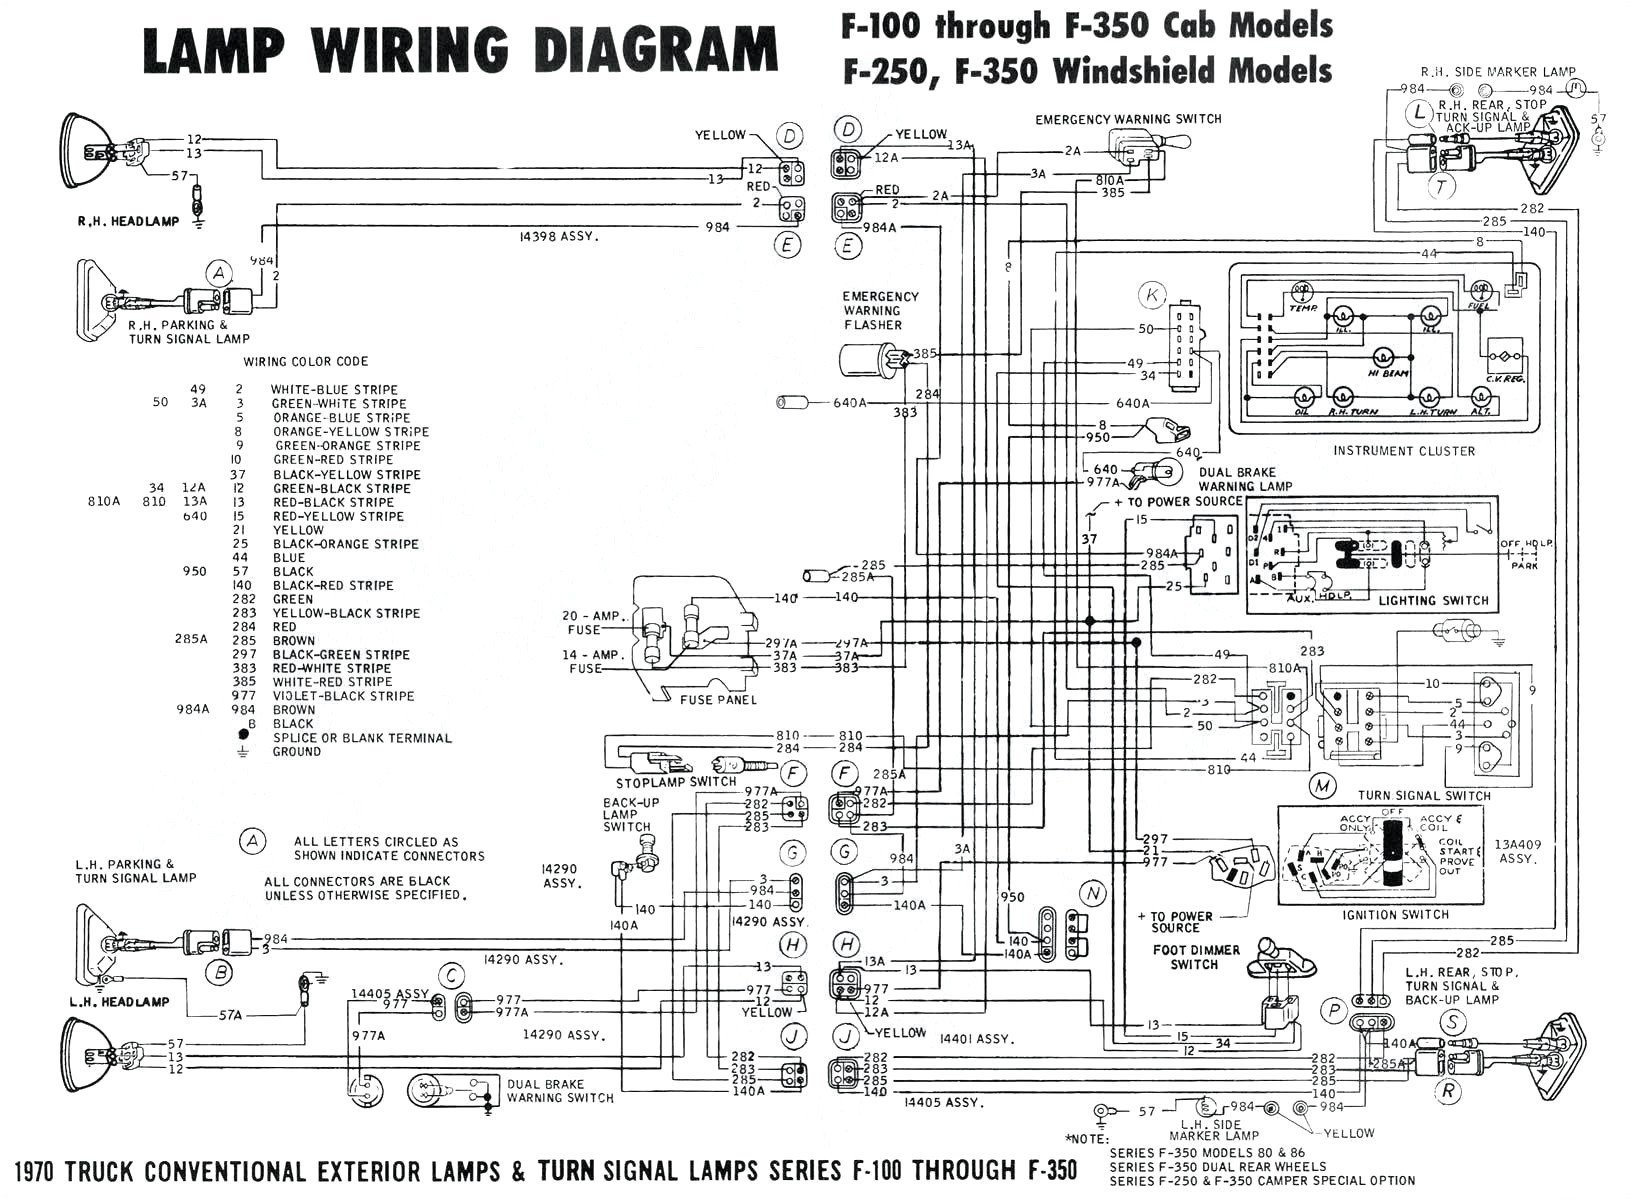 gm headlight switch wiring diagram database universal headlight switch wiring with dimmer free download wiring